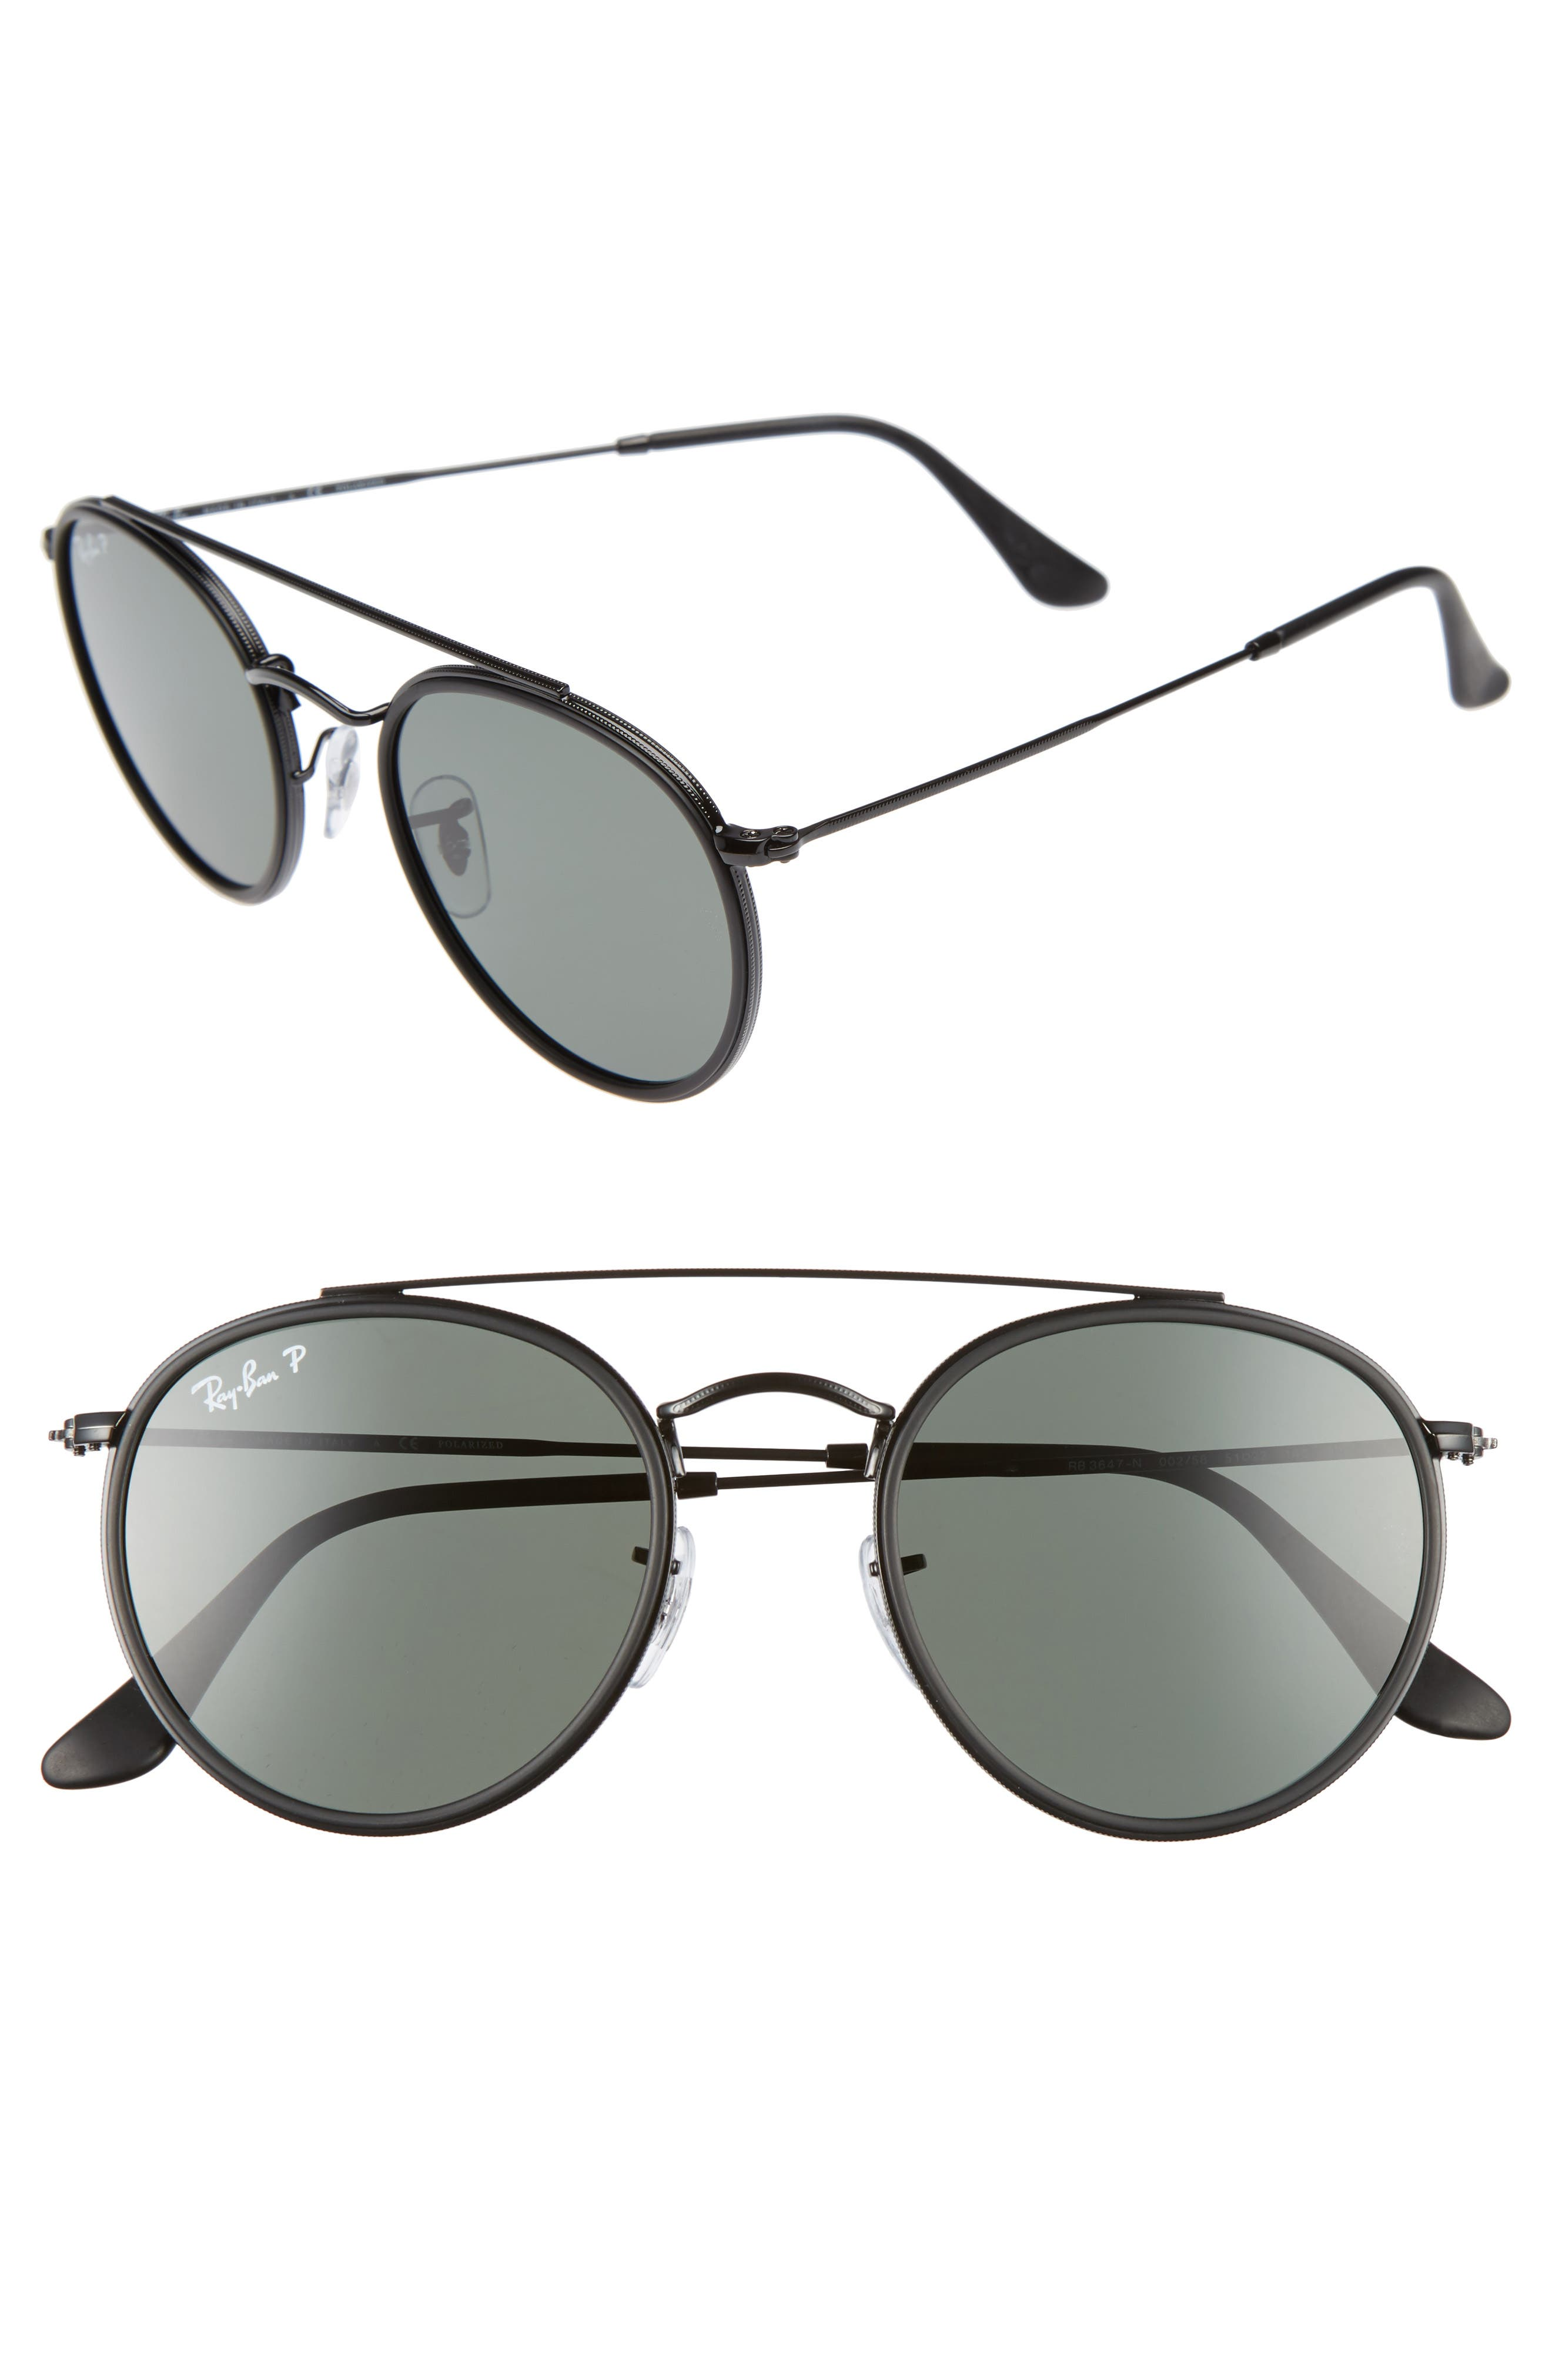 Icons 51mm Round Sunglasses,                         Main,                         color, Black/ Green